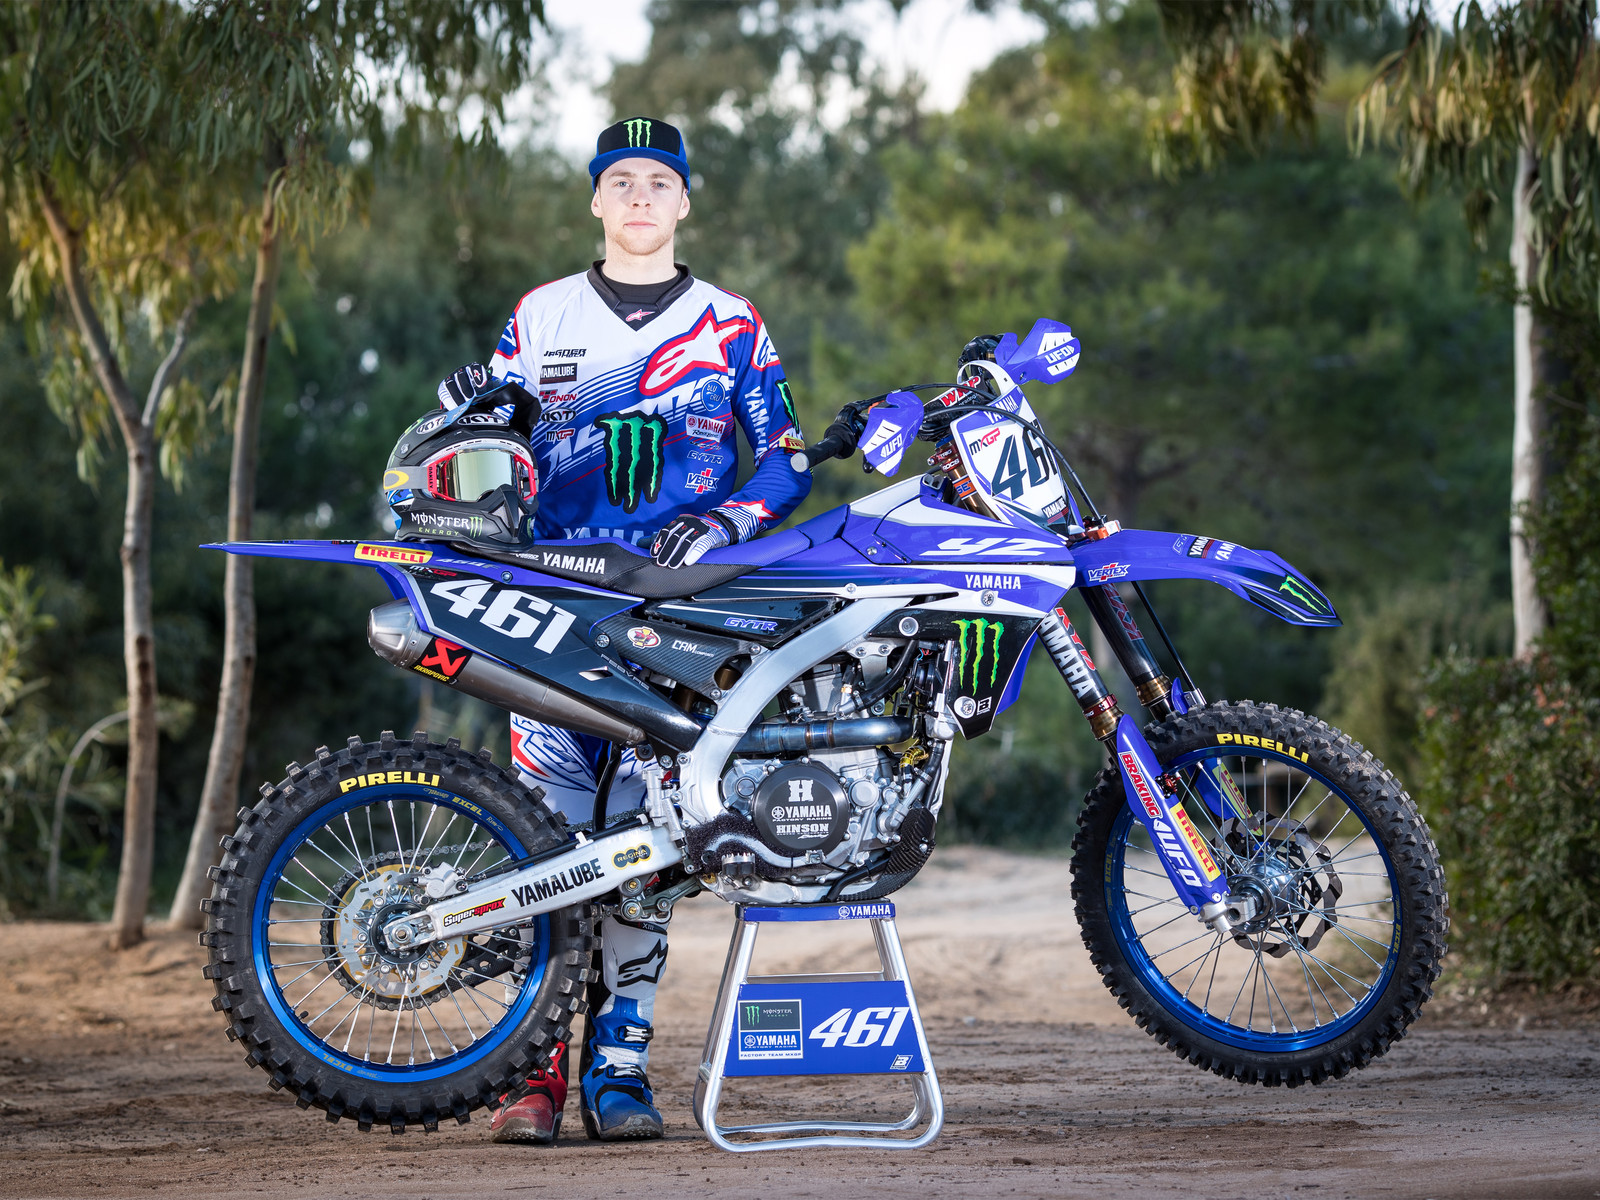 Romain Febvre and his 2017 Monster Energy Yamaha Factory YZ450FM - First Look: 2017 Monster Energy & Wilvo Yamaha MXGP Teams - Motocross Pictures - Vital MX